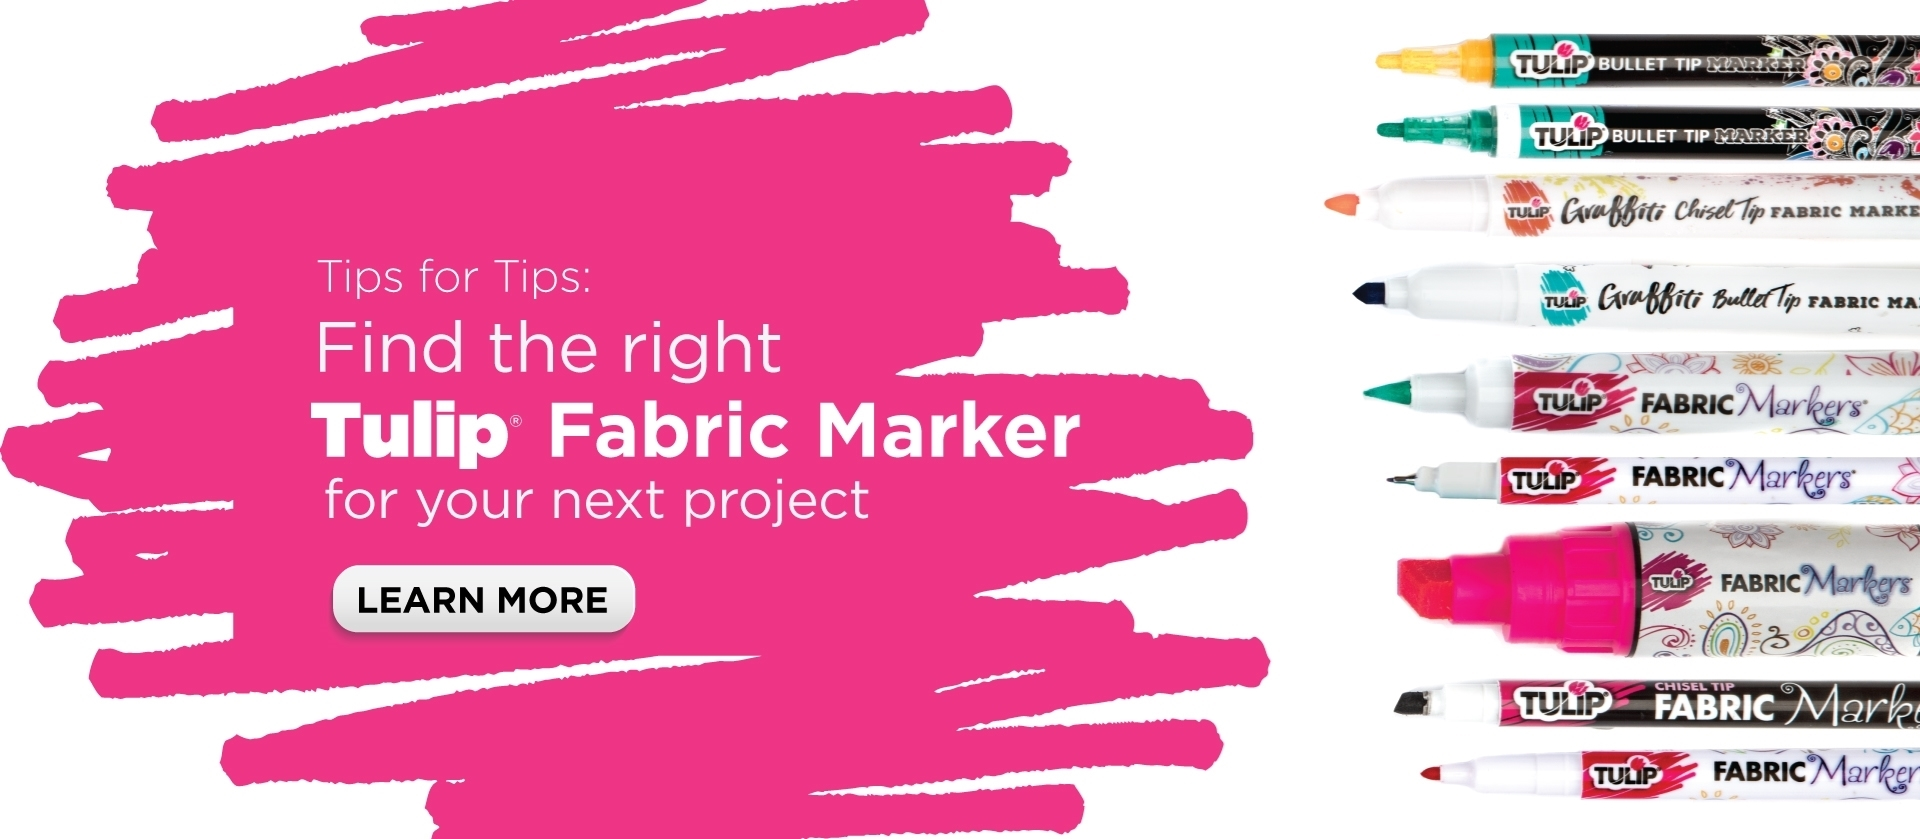 How to Find the Right Fabric Marker for Your Next Project